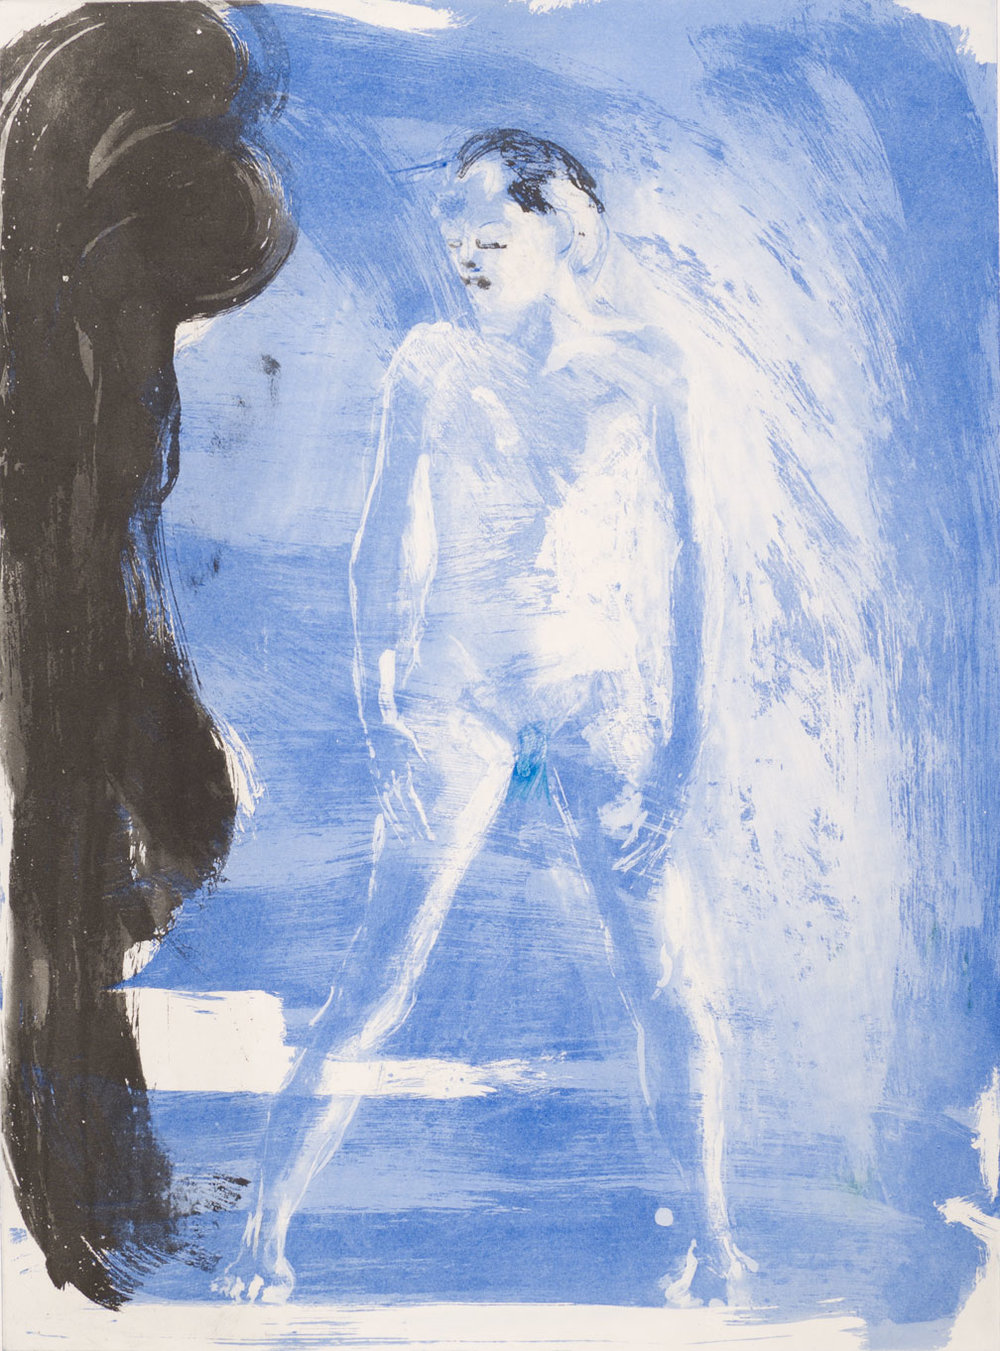 Floating Islands George Platt Lynes Figure, 1985. Etching on paper, study proof H, 30 x 21 inches